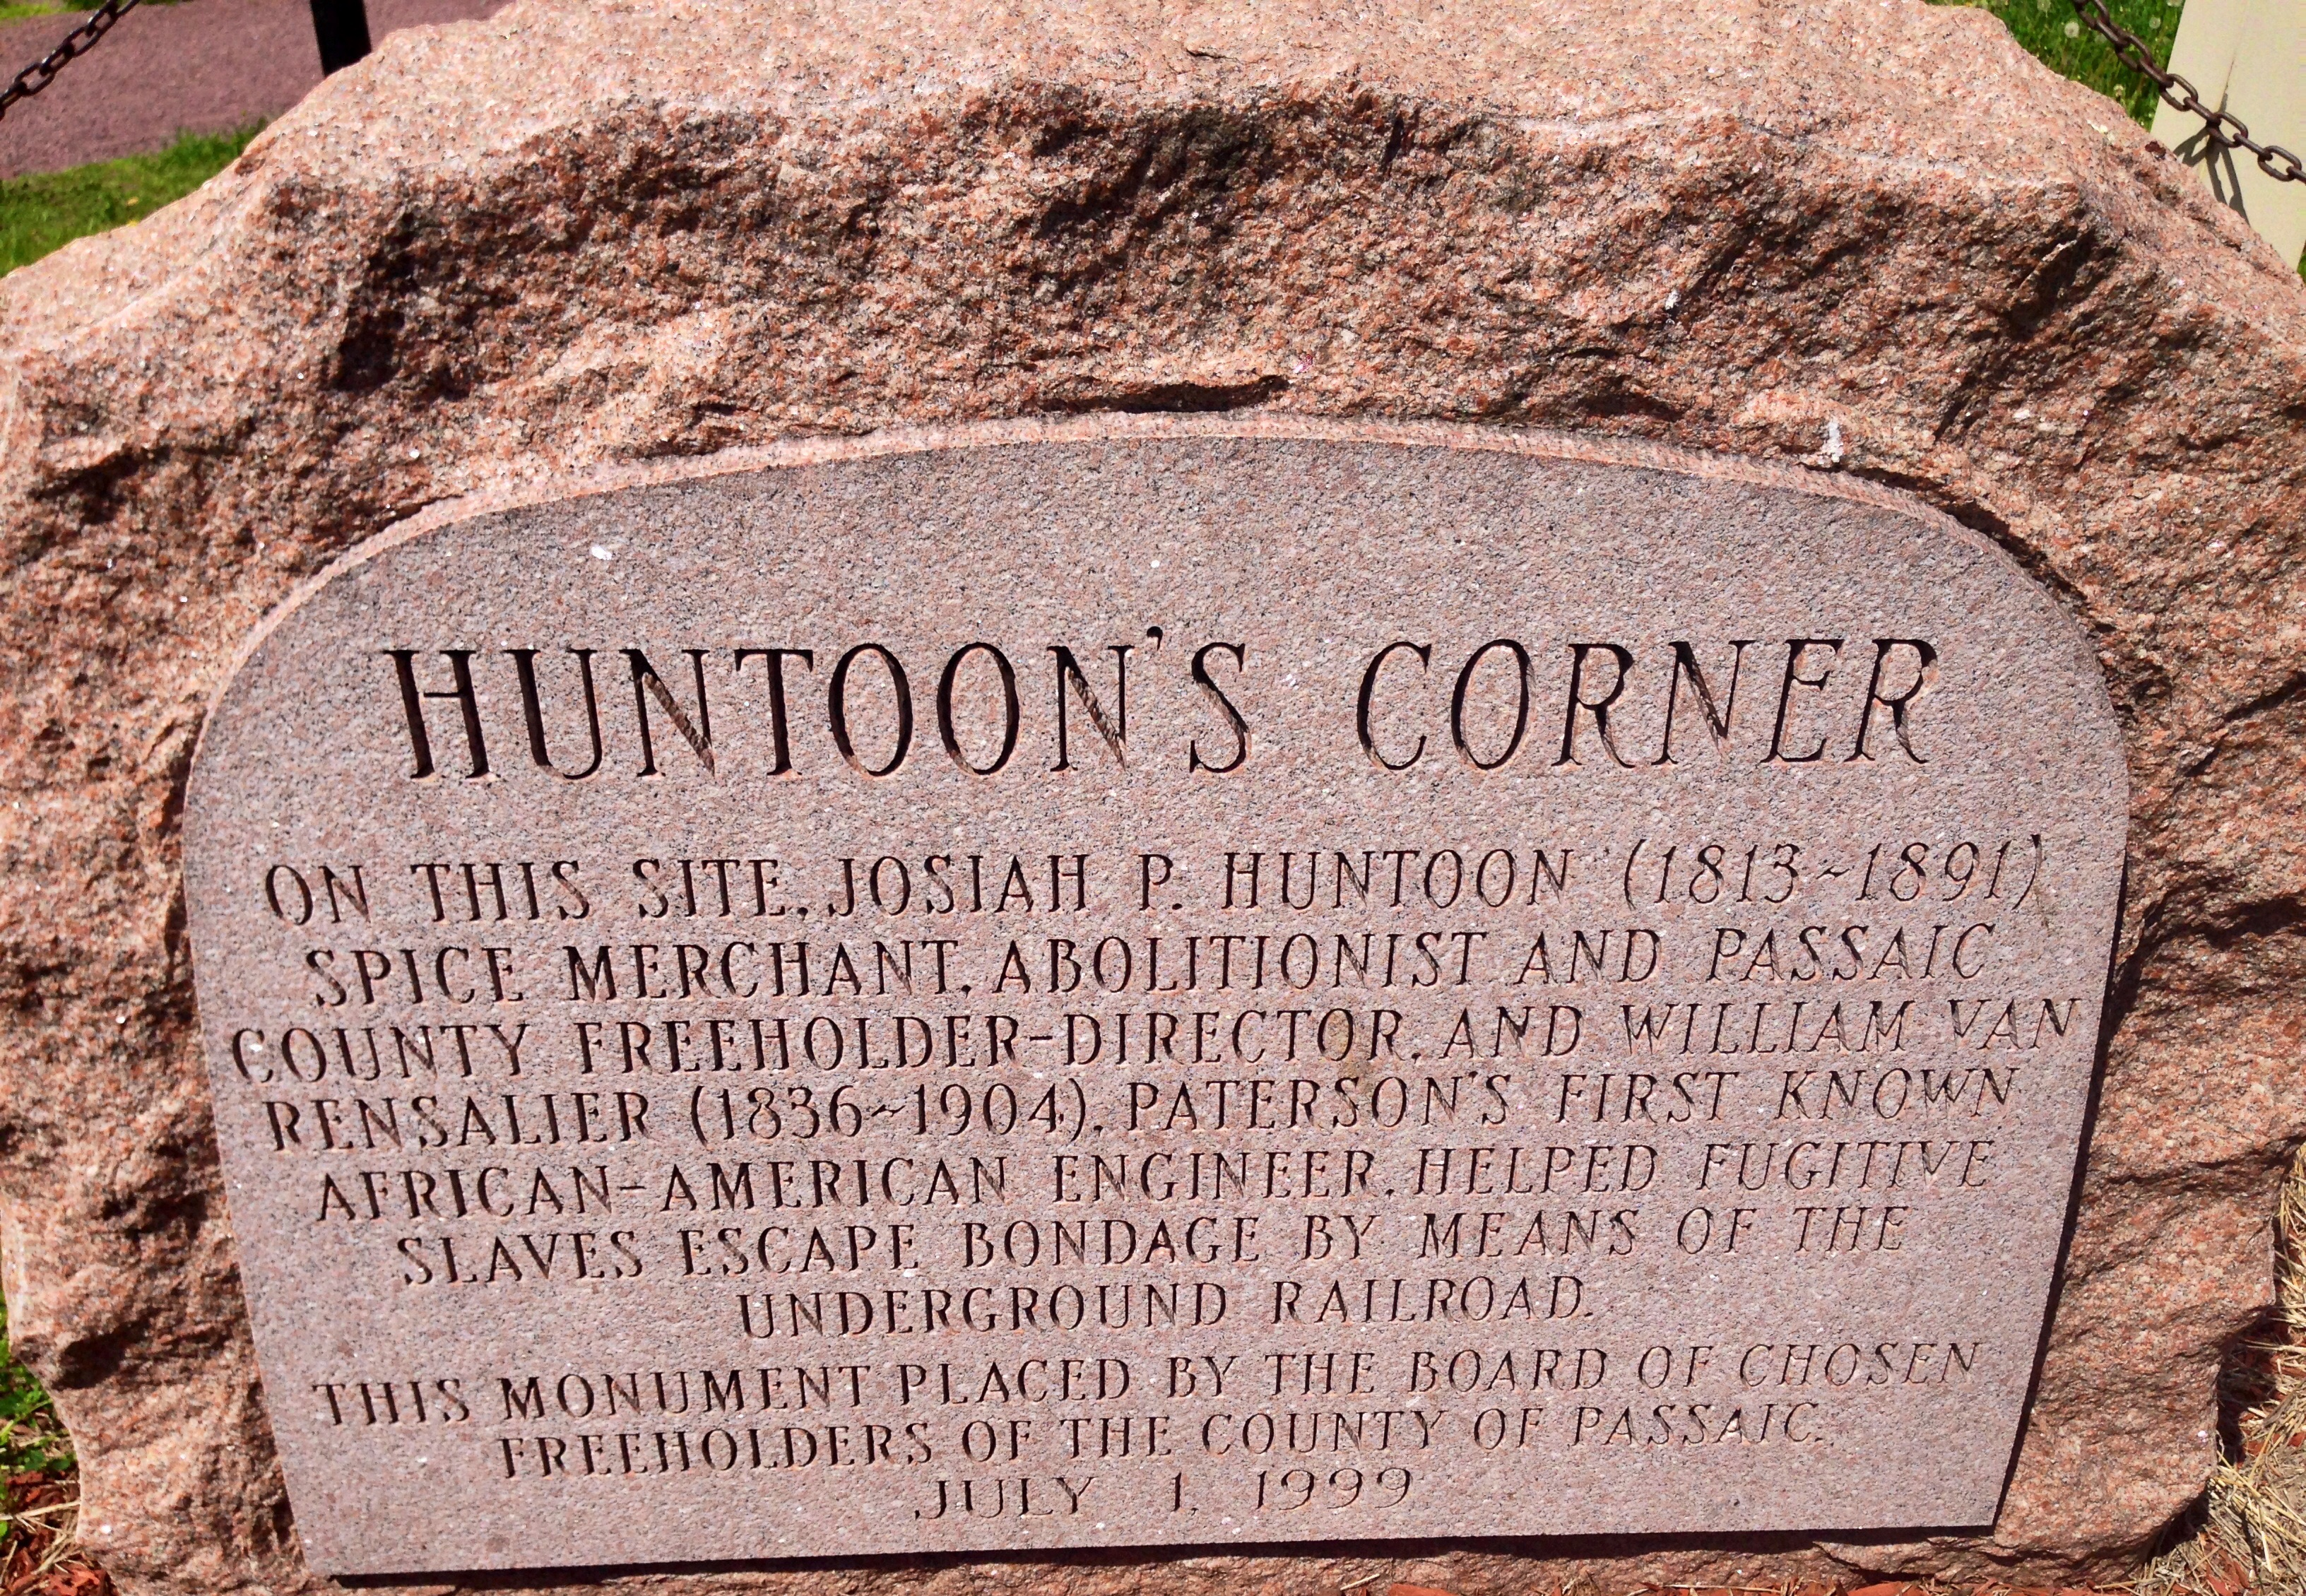 Prior to the current monument, this stone marked the location of the factory where Huntoon and Van Rensalier helped runaway slaves.